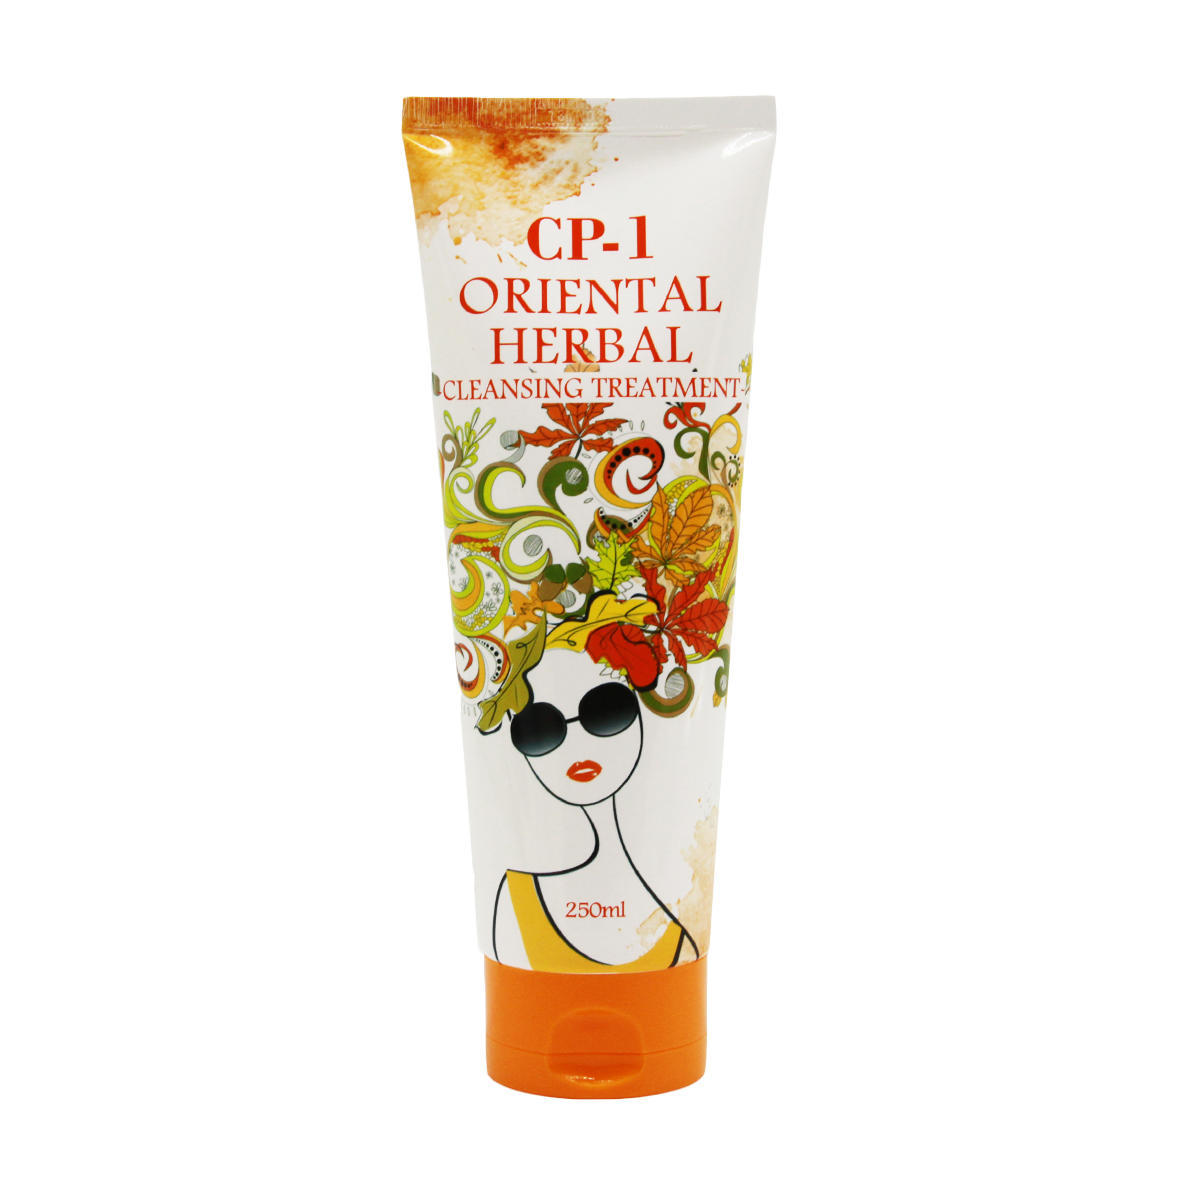 Уход за волосами Маска для волос Esthetic House CP-1 Oriental Herbal Cleansing Treatment, 250 мл import_files_ad_ad5165505b2c11e980fb3408042974b1_ad5165515b2c11e980fb3408042974b1.jpg